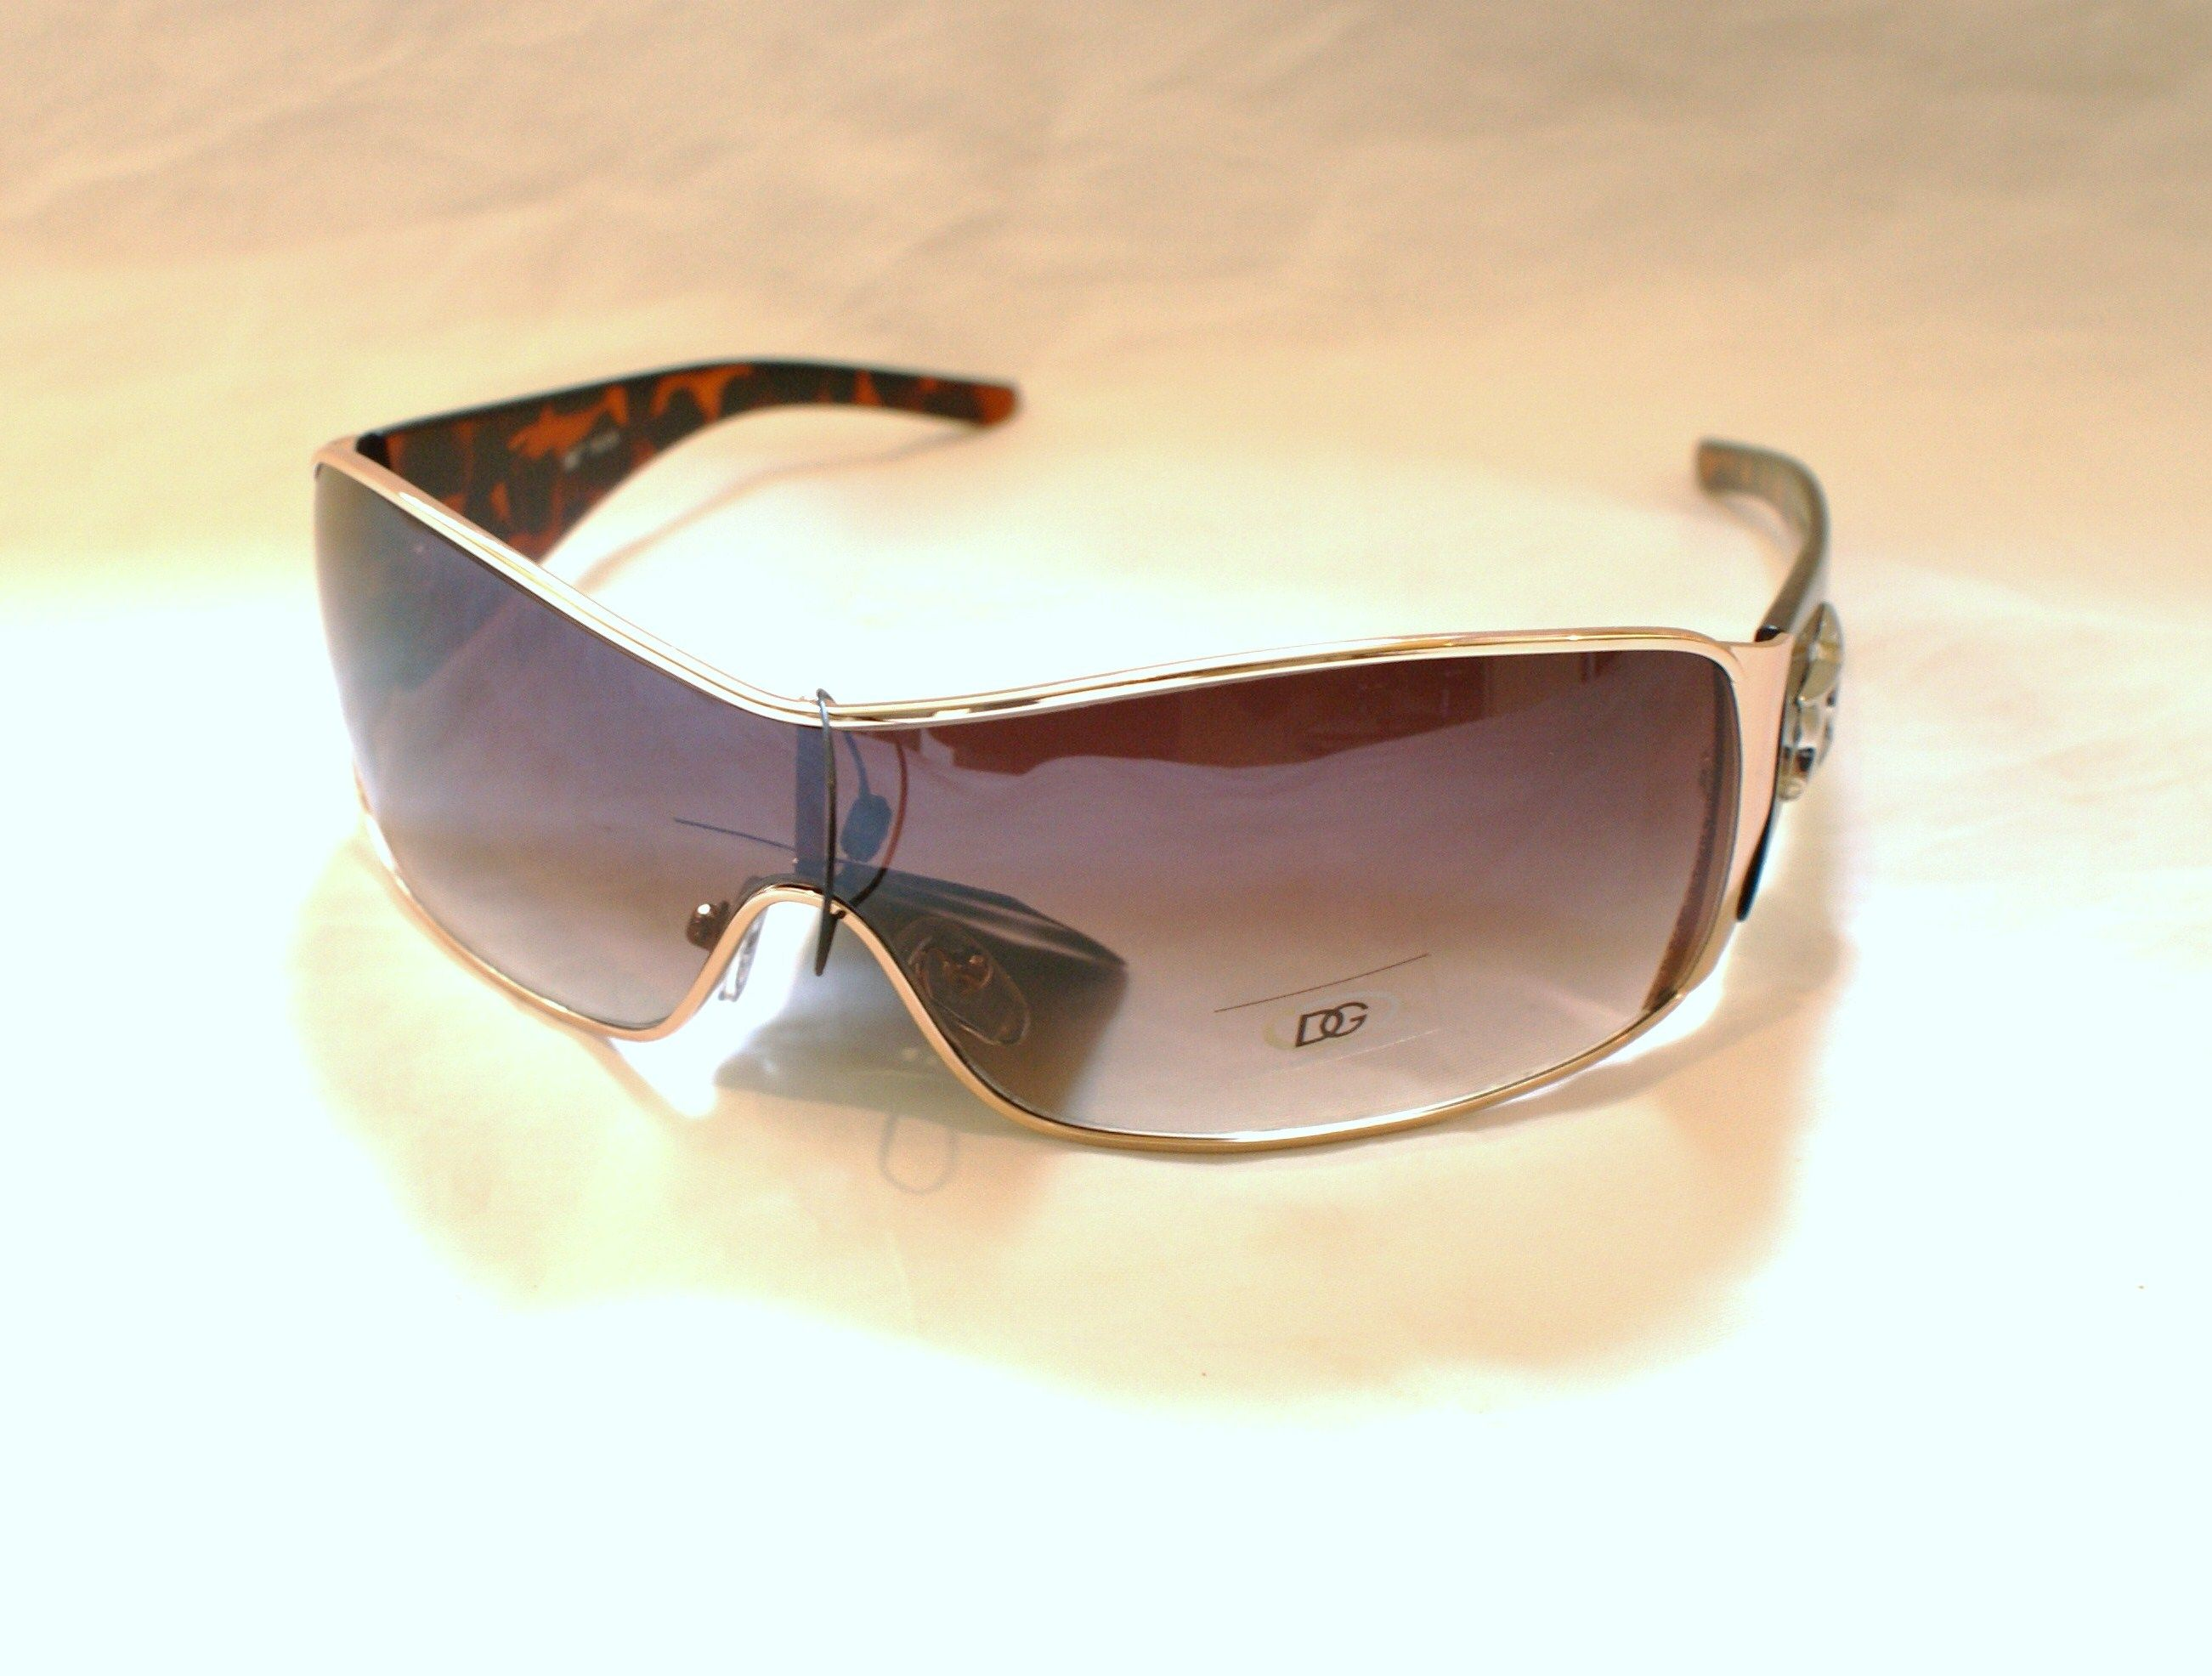 burberry sunglasses new collection  new 2013 dg03 mens